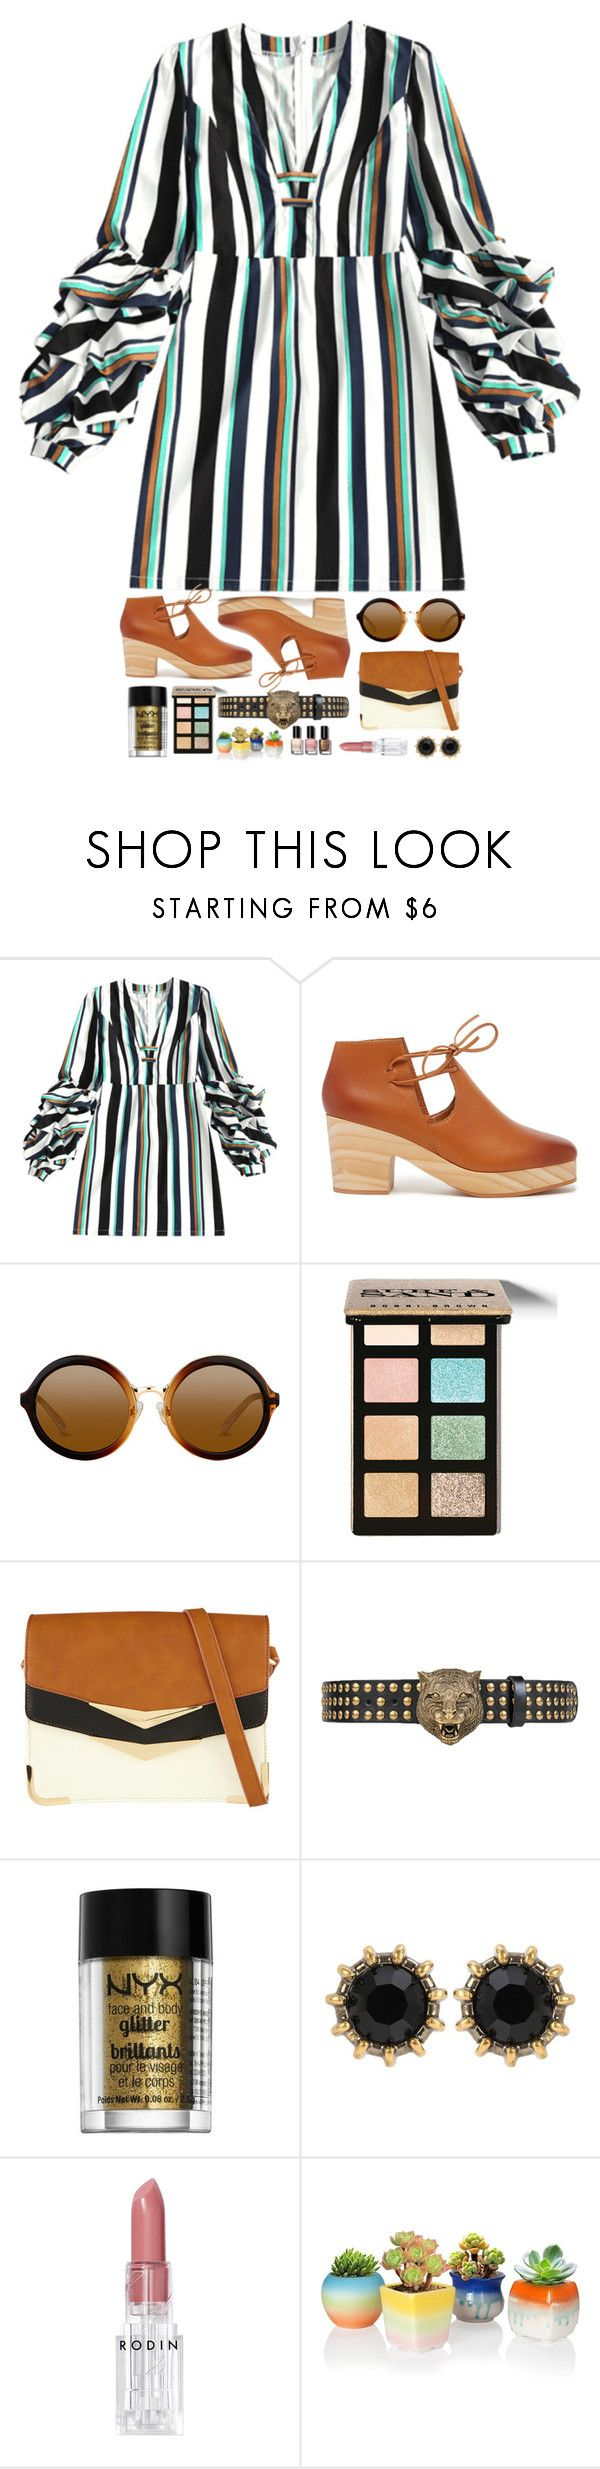 """Sin título #1175"" by melisafash ❤ liked on Polyvore featuring Kelsi Dagger Brooklyn, Bobbi Brown Cosmetics, ALDO, Gucci, NYX and Rodin"